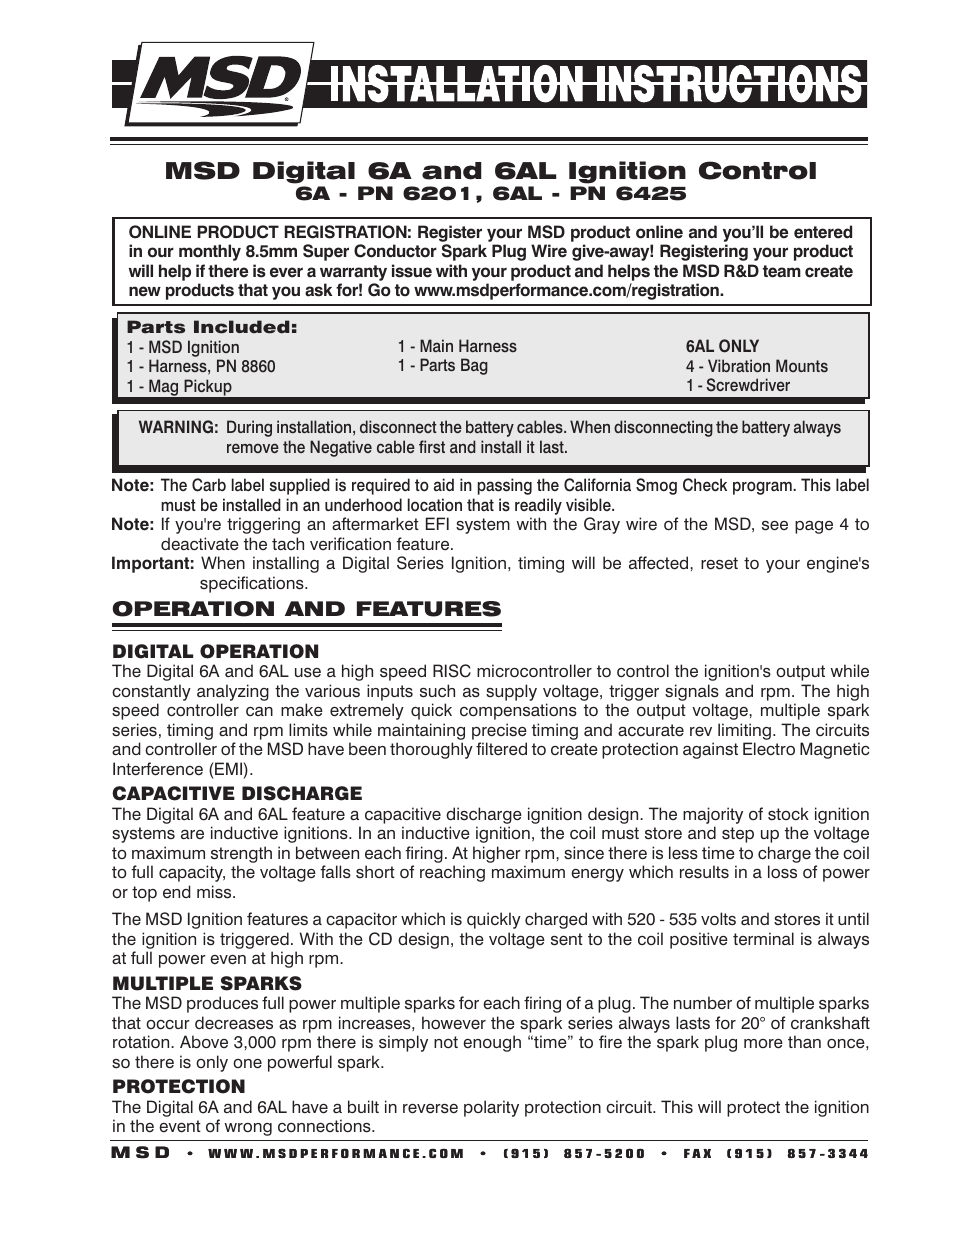 Msd 6201 Digital 6a Ignition Control User Manual